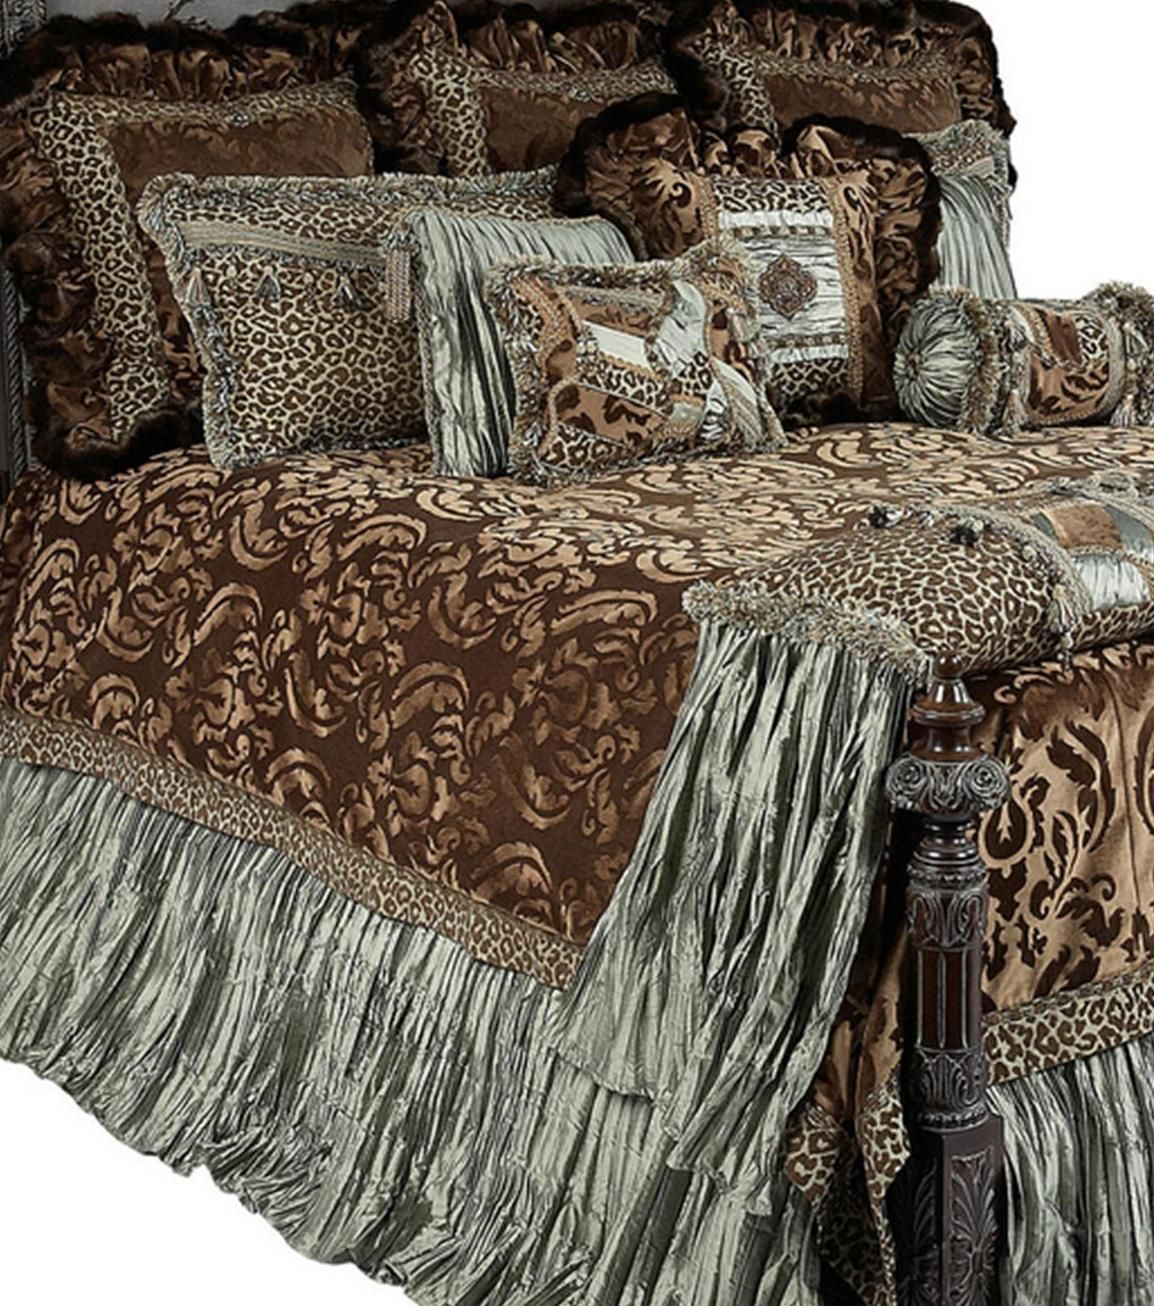 Beautiful Luxury High End Bedding and Accent Pillows by Reilly Chance  Collection  ARISTOCAT. Beautiful Luxury High End Bedding and Accent Pillows by Reilly